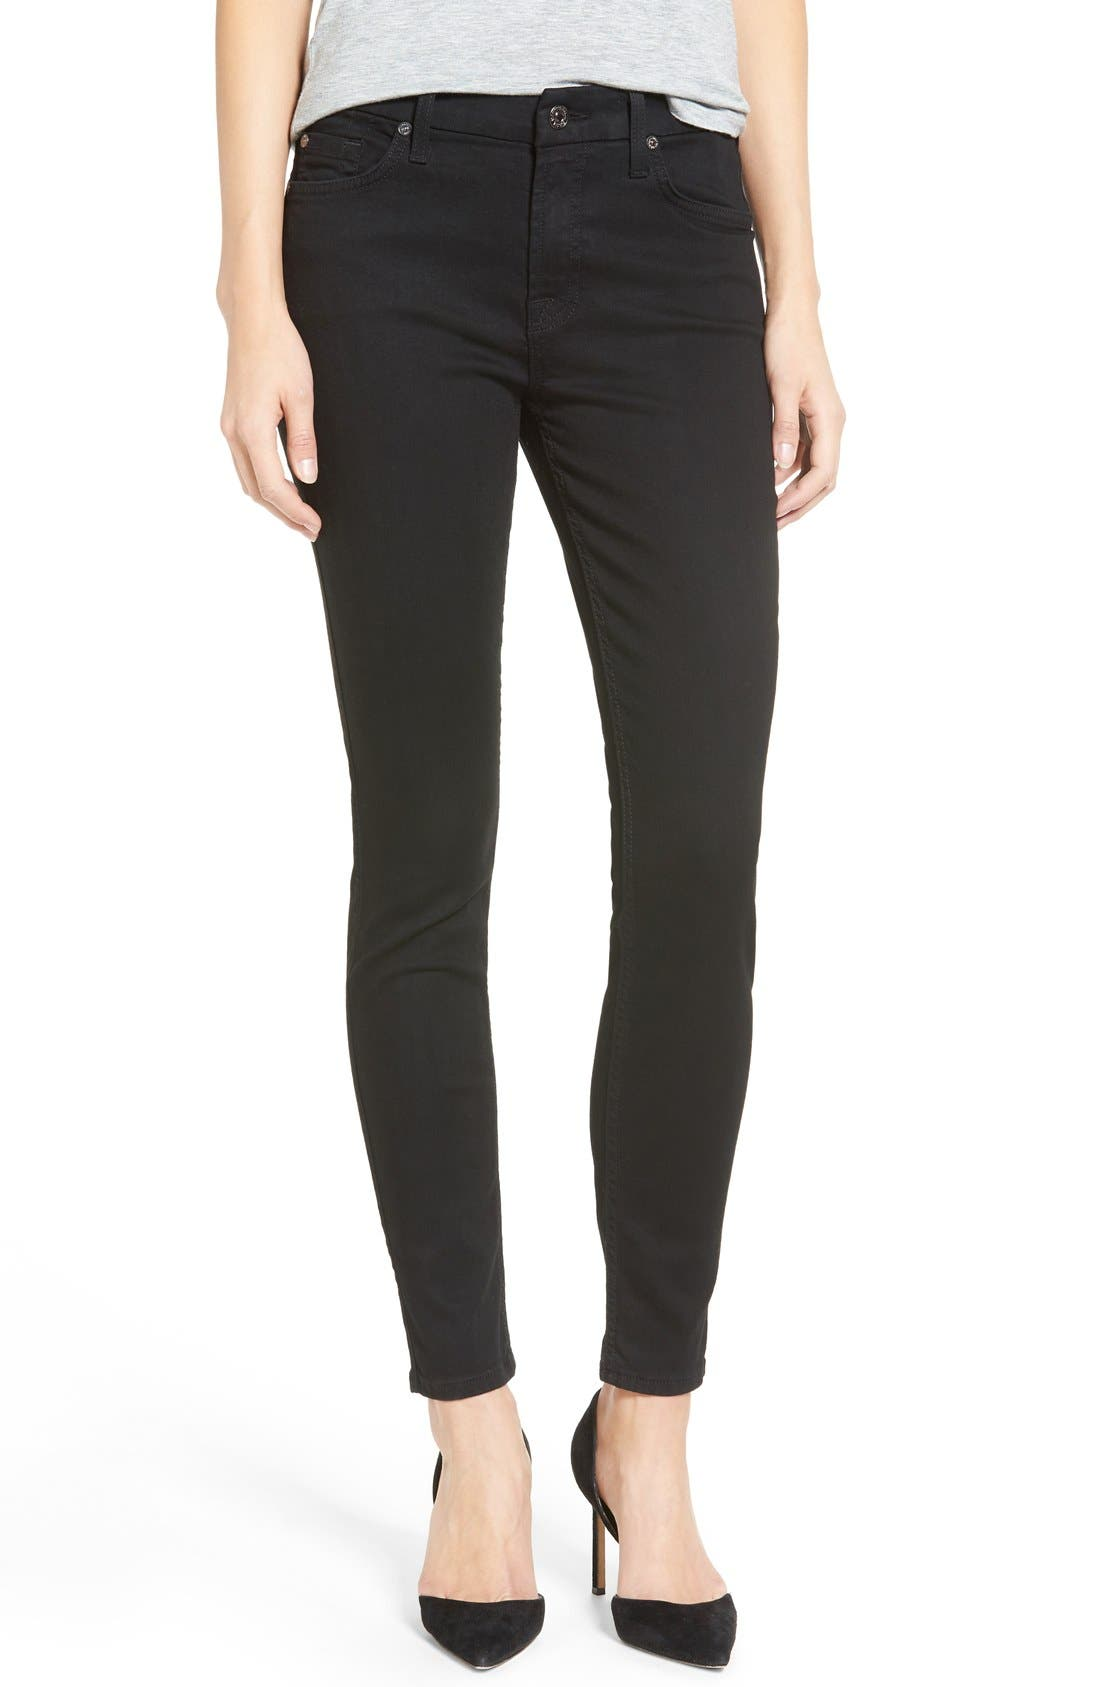 b(air) Ankle Skinny Jeans,                             Main thumbnail 1, color,                             004